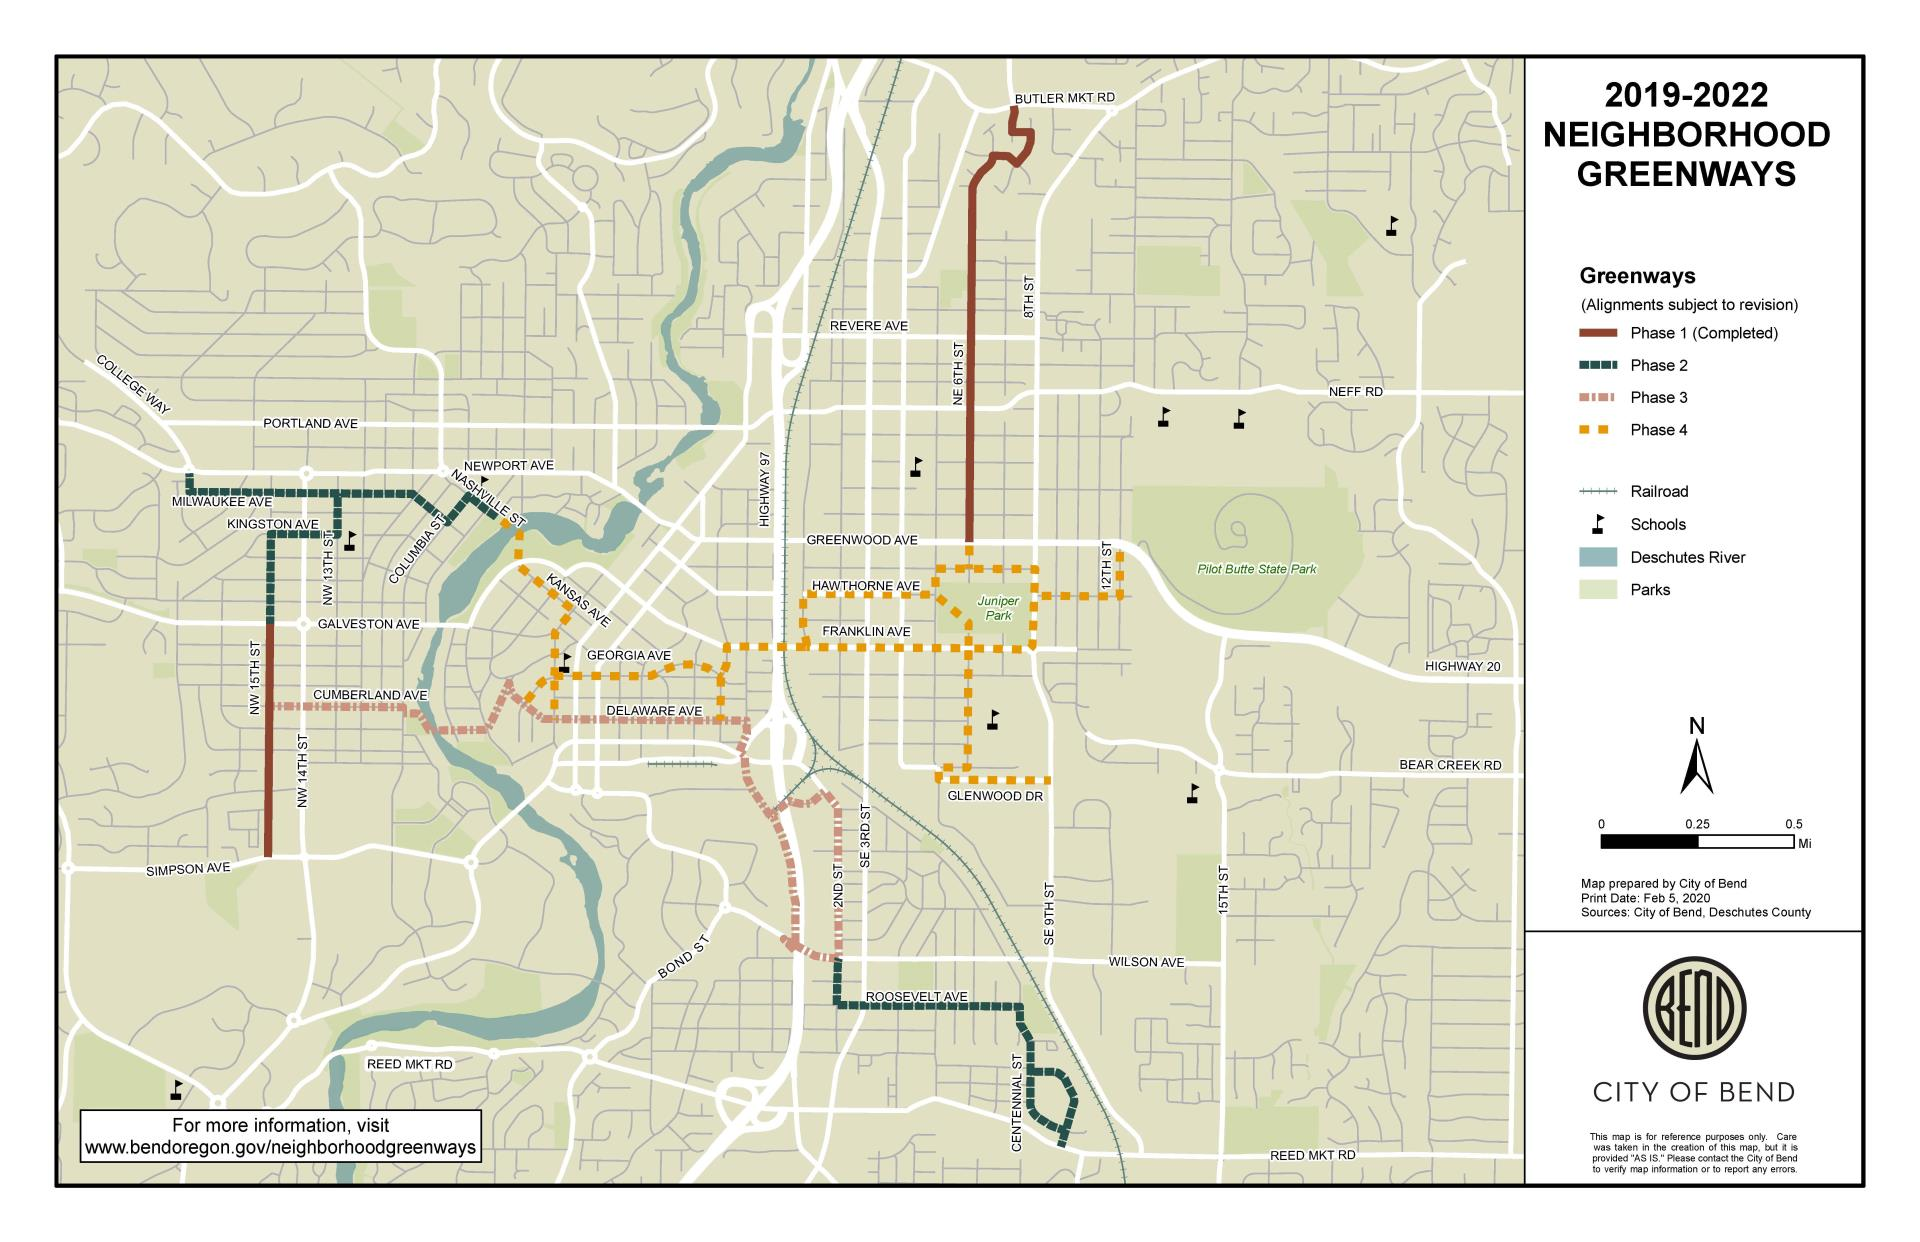 Map showing proposed Neighborhood Greenway routes and phasing